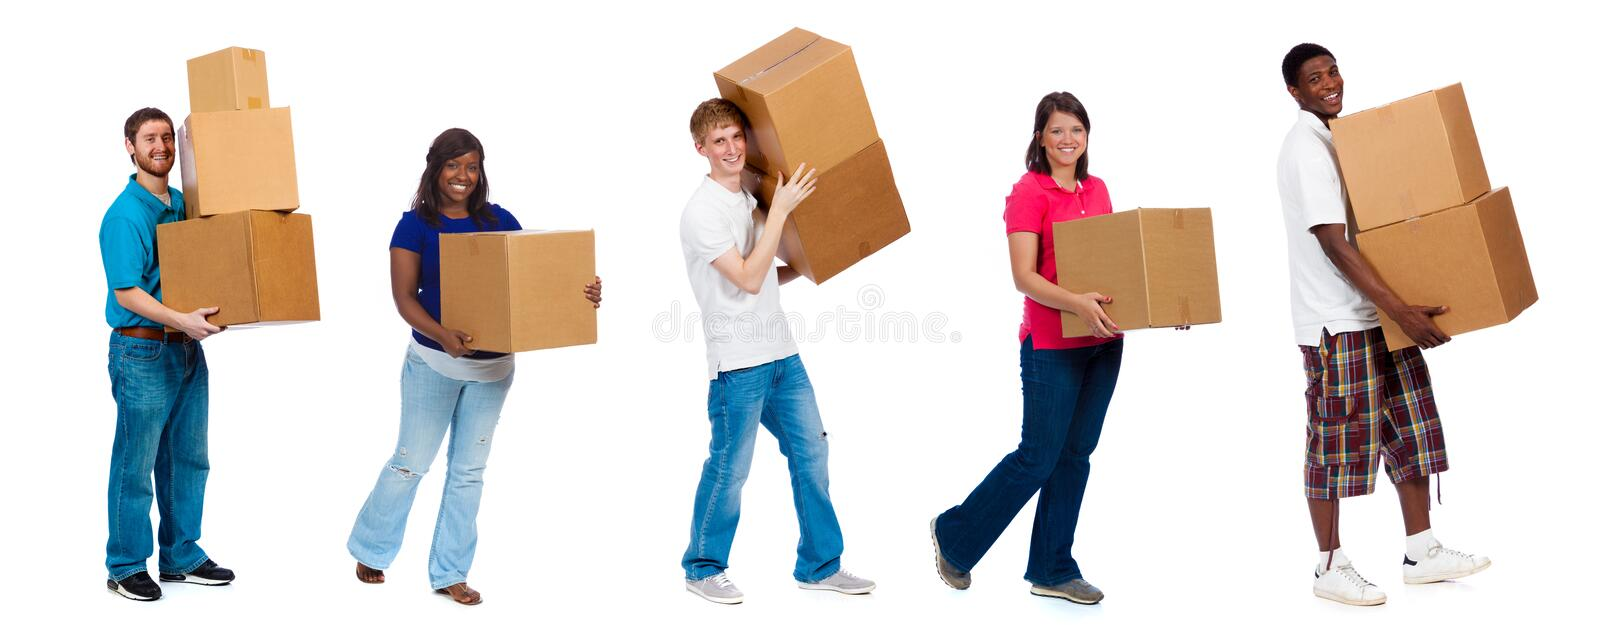 College students or friends moving boxes stock photos